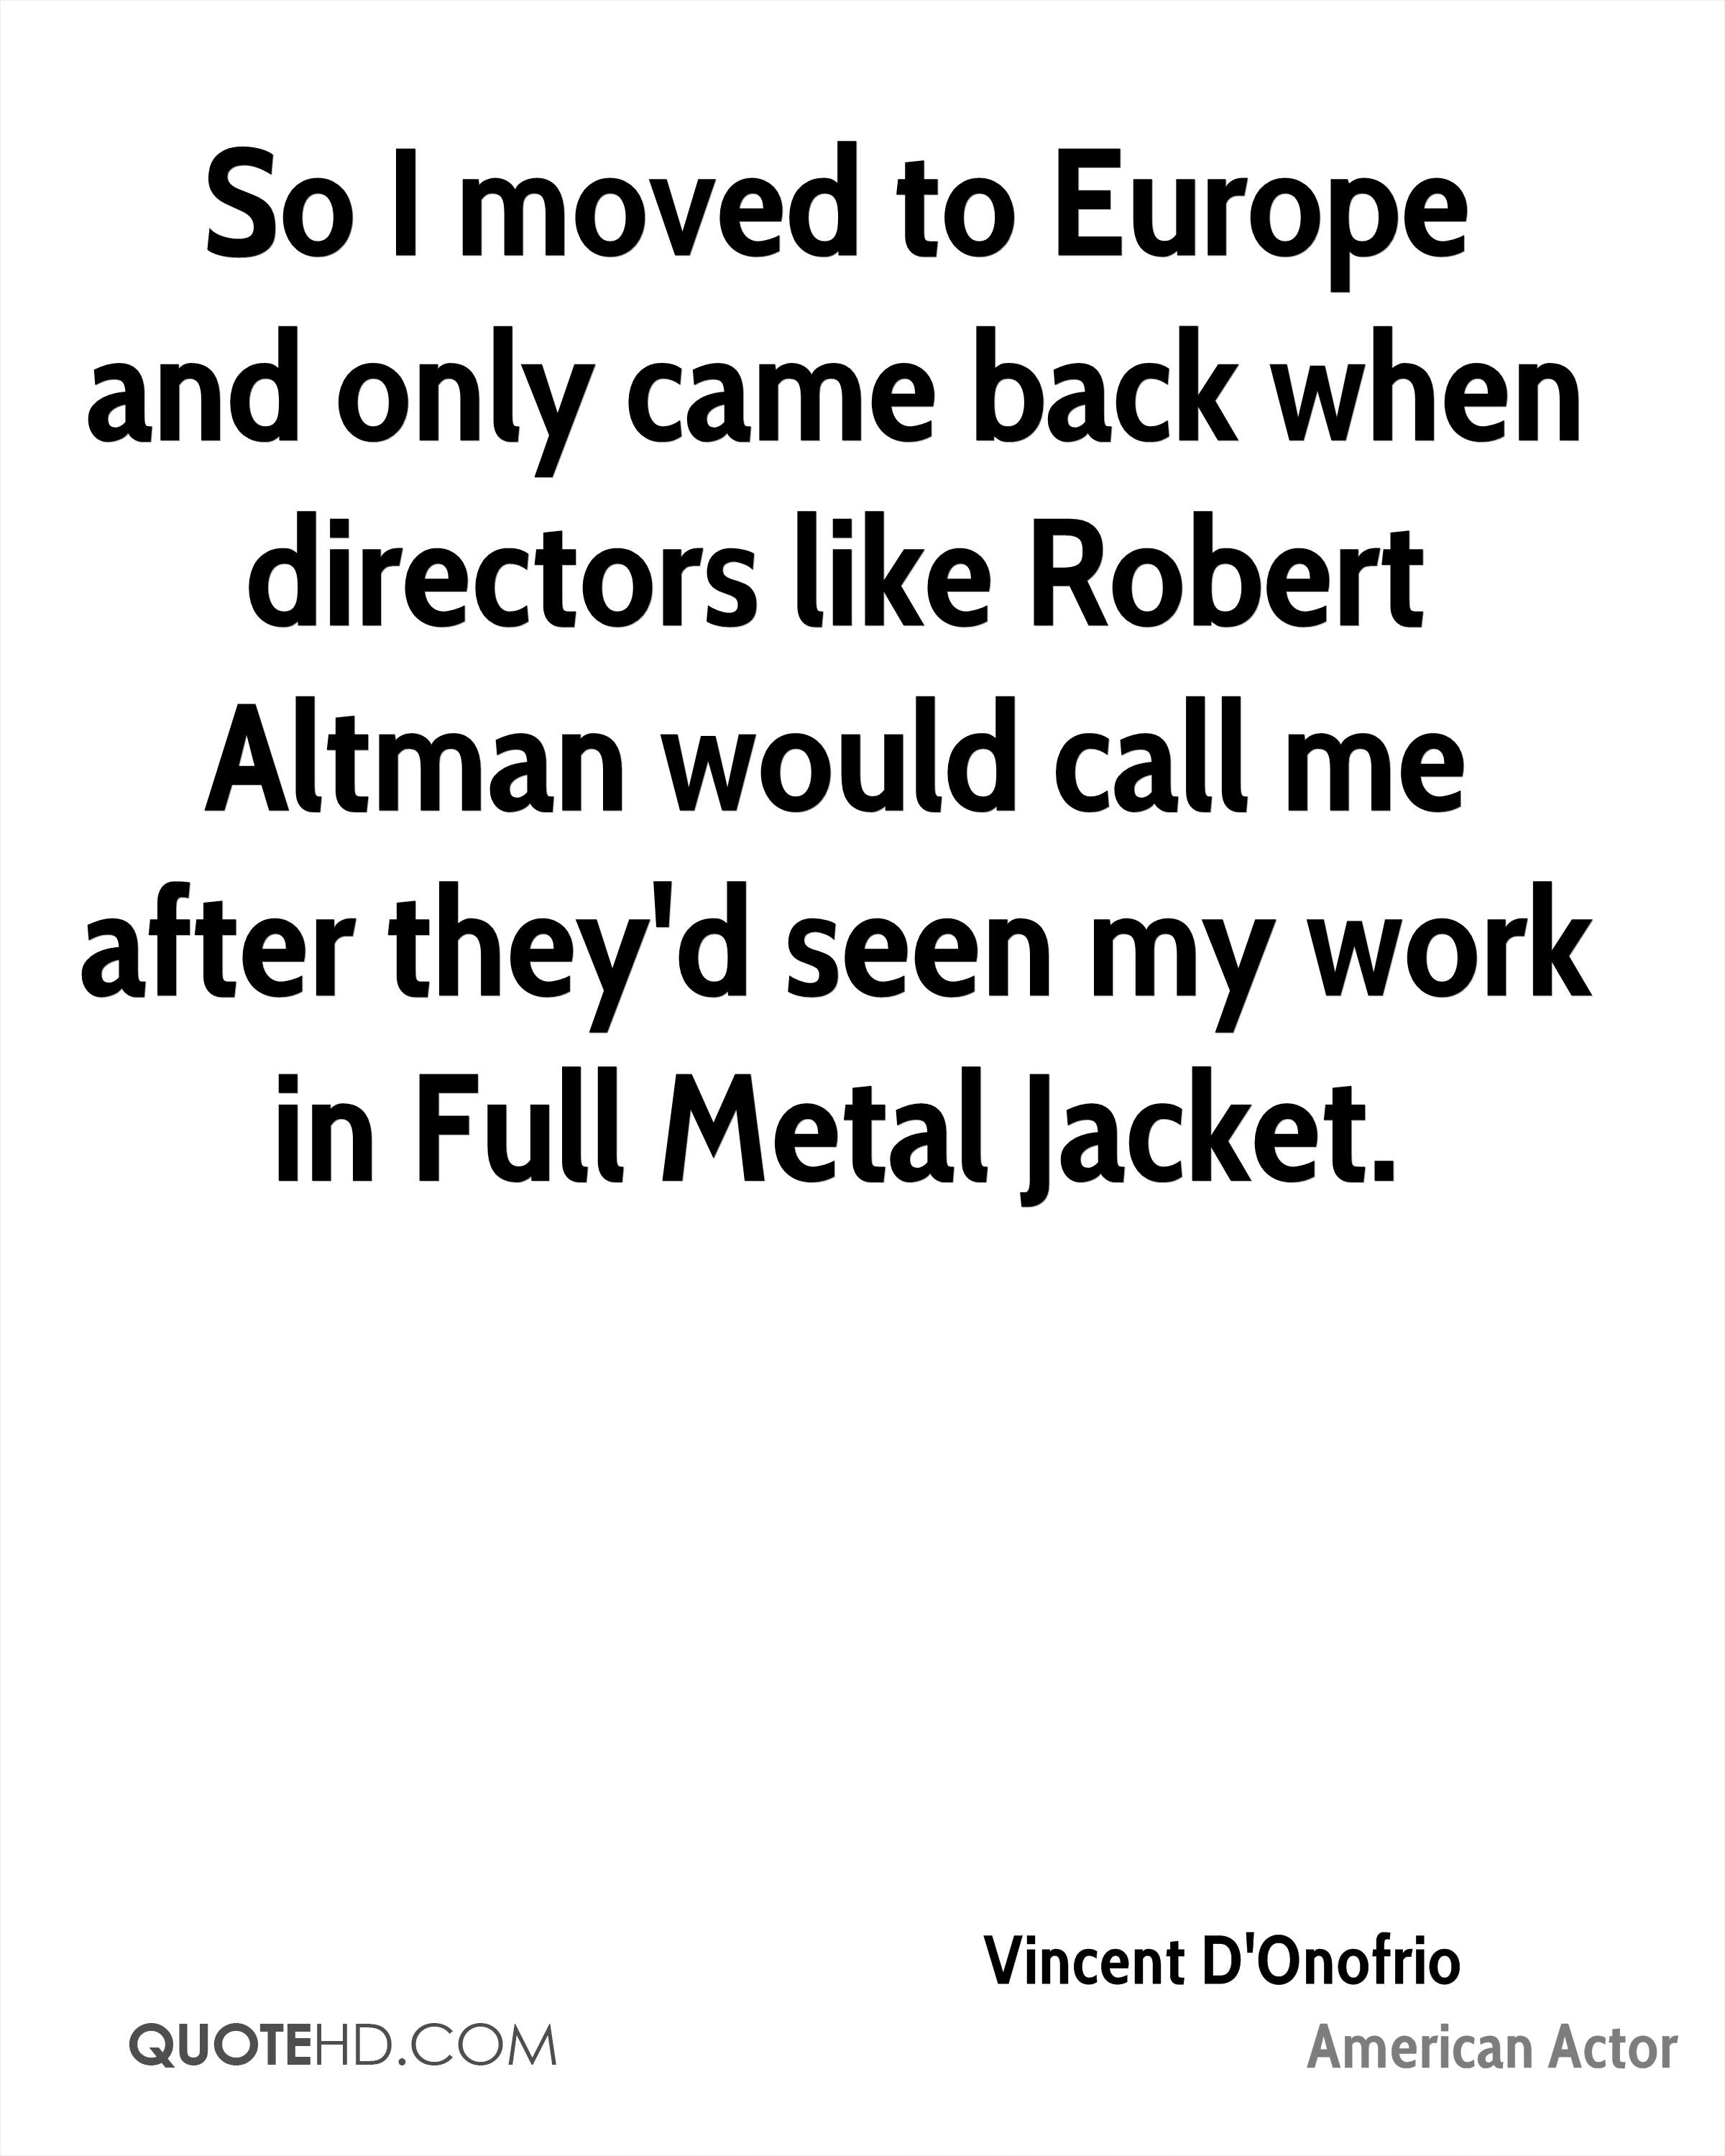 So I moved to Europe and only came back when directors like Robert Altman would call me after they'd seen my work in Full Metal Jacket.